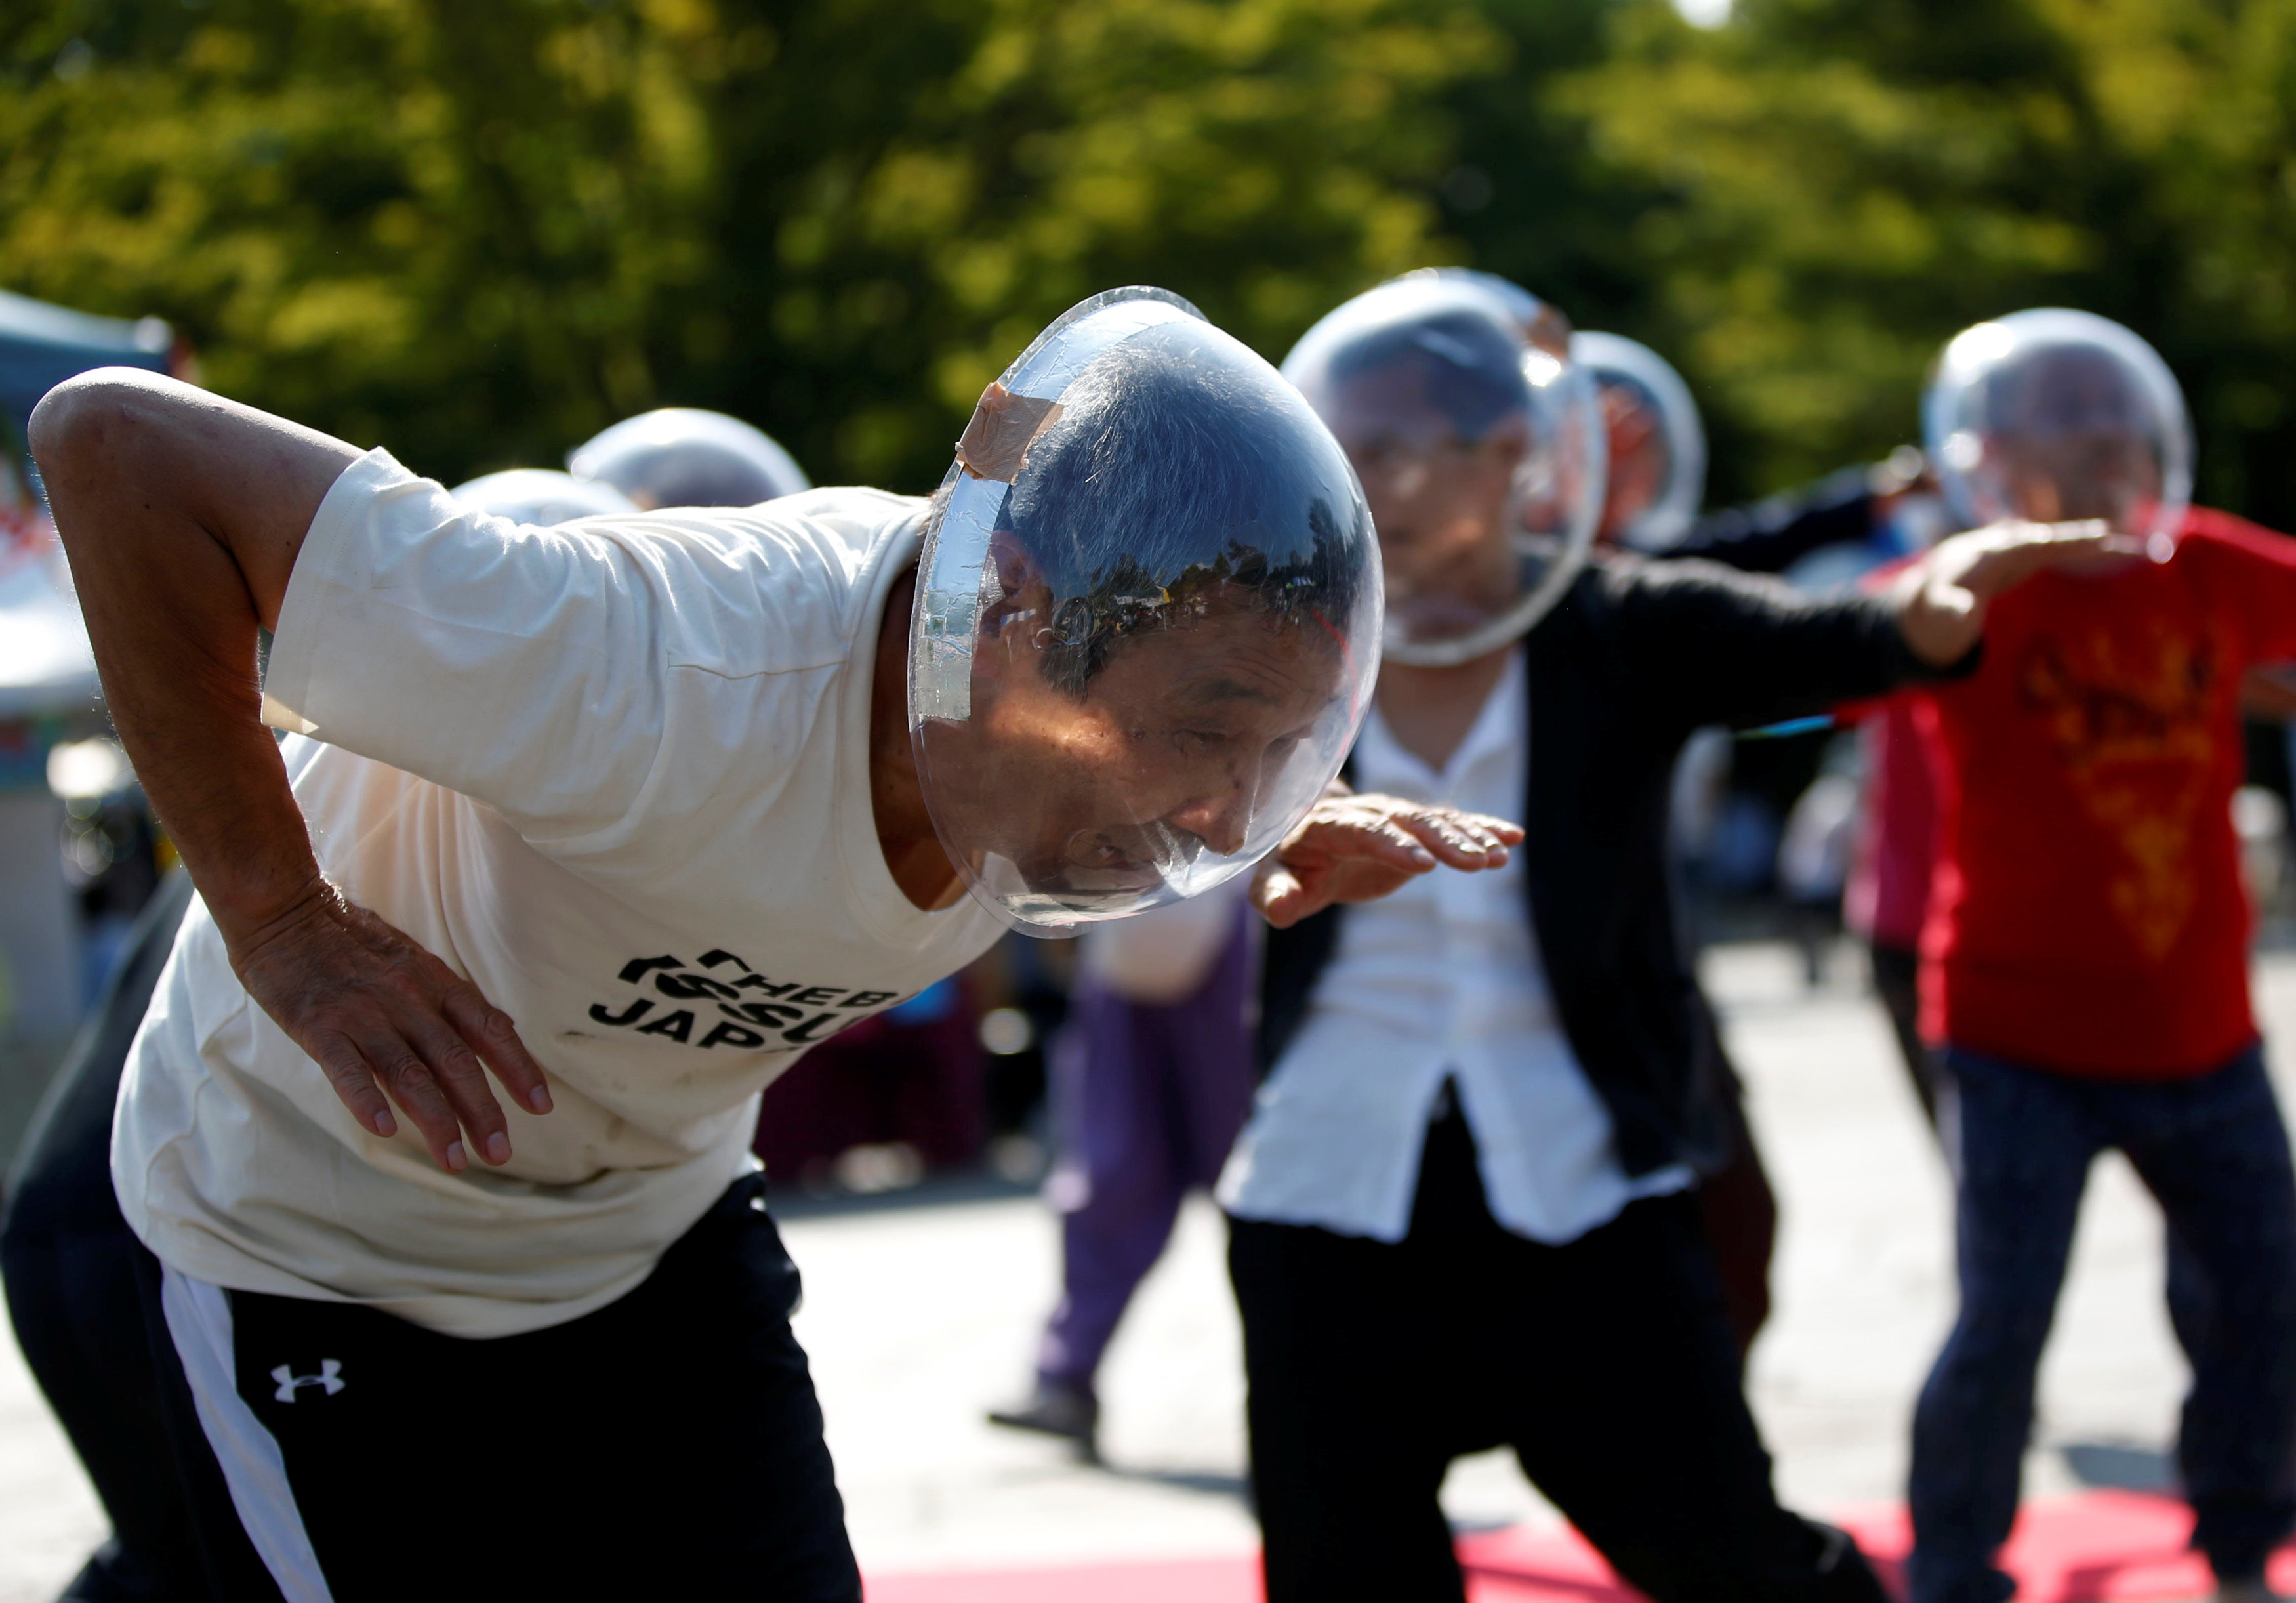 """Masayoshi Koiso (L), a 69-year-old homeless man and a member of Newcomer """"H"""" Sokerissa! - a group of current and former homeless dancers, performs at a park in Tokyo, Japan, September 9, 2017. Picture taken September 9, 2017. REUTERS/Toru Hanai"""